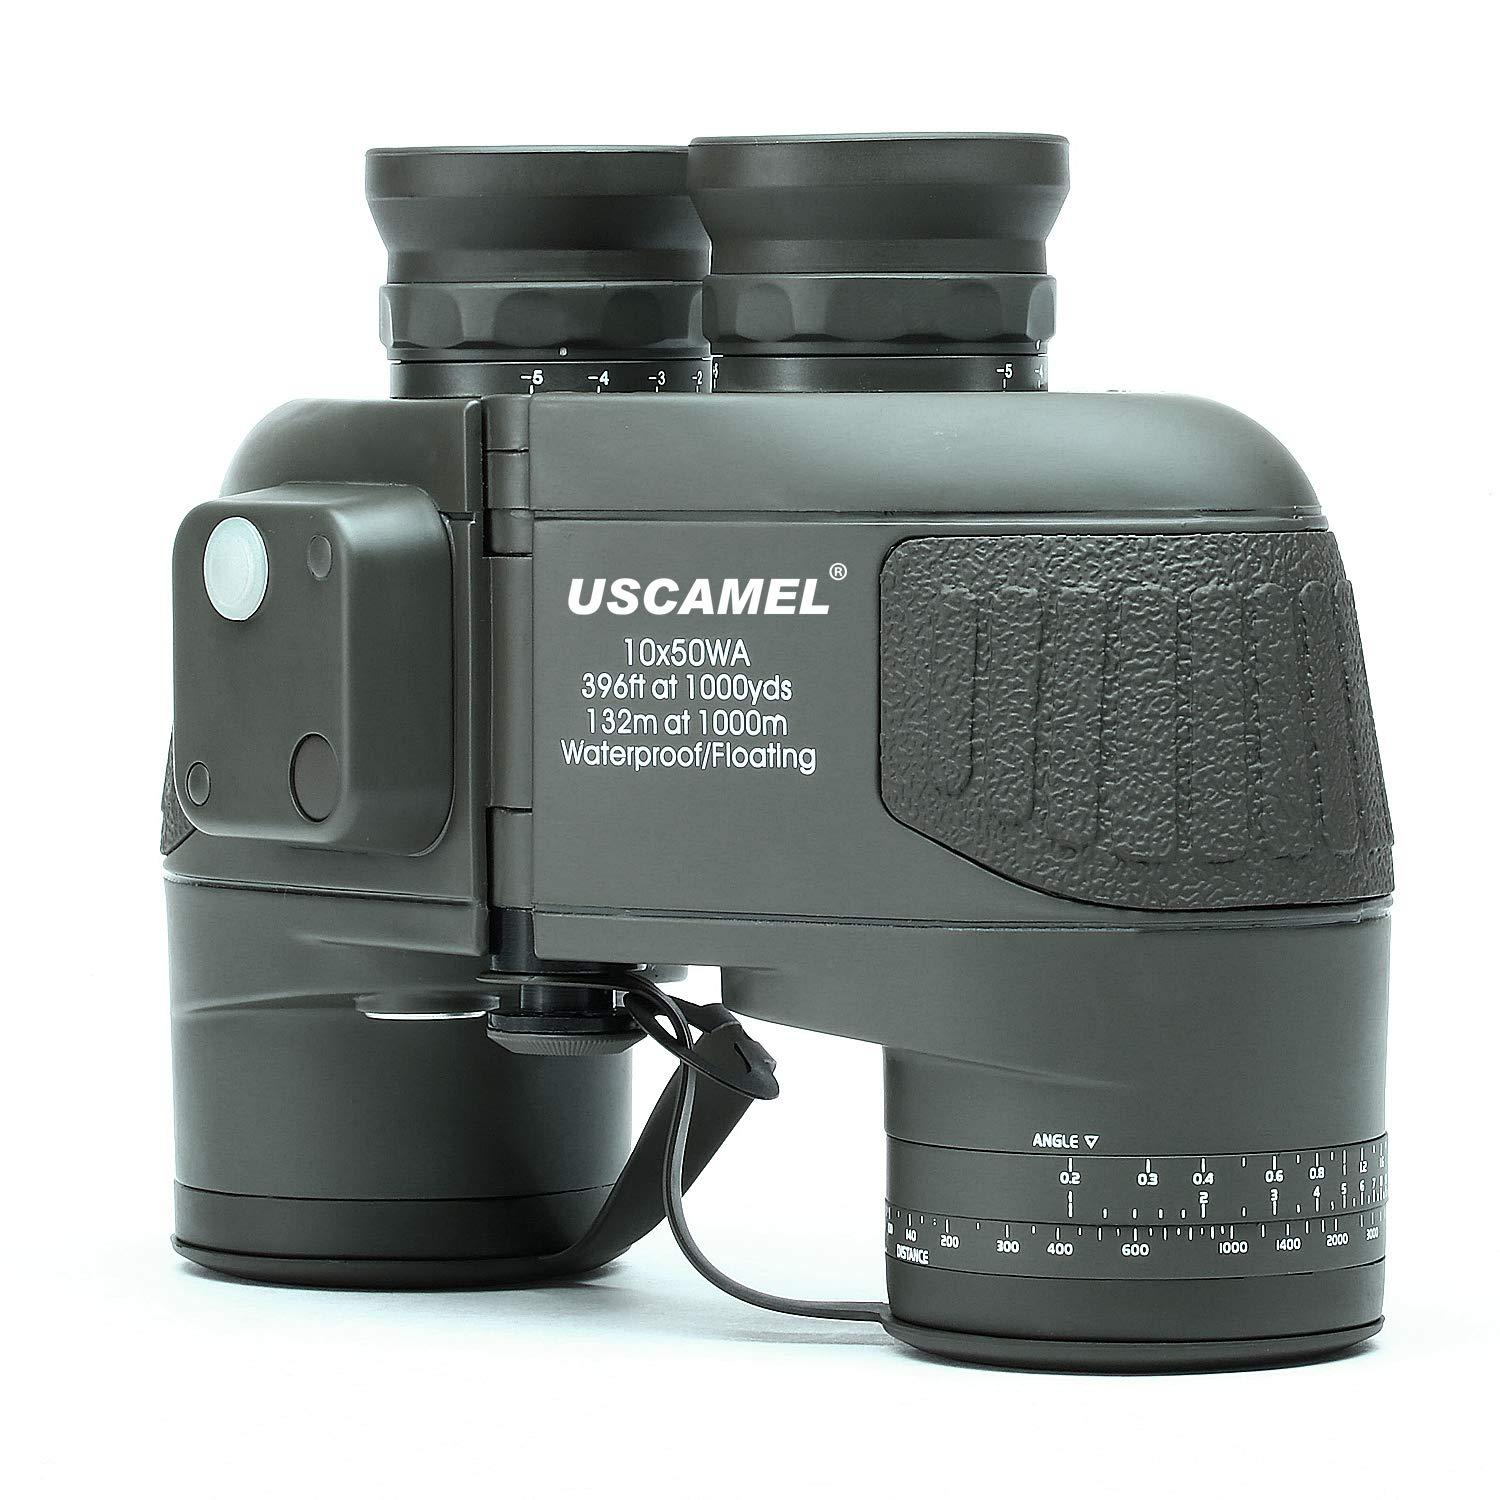 USCAMEL 10X50 Marine Military Binoculars for Adults, Waterproof Binoculars with Rangefinder Compass BAK4 Prism FMC Lens for Birdwatching Hunting Boating-Army Green by USCAMEL